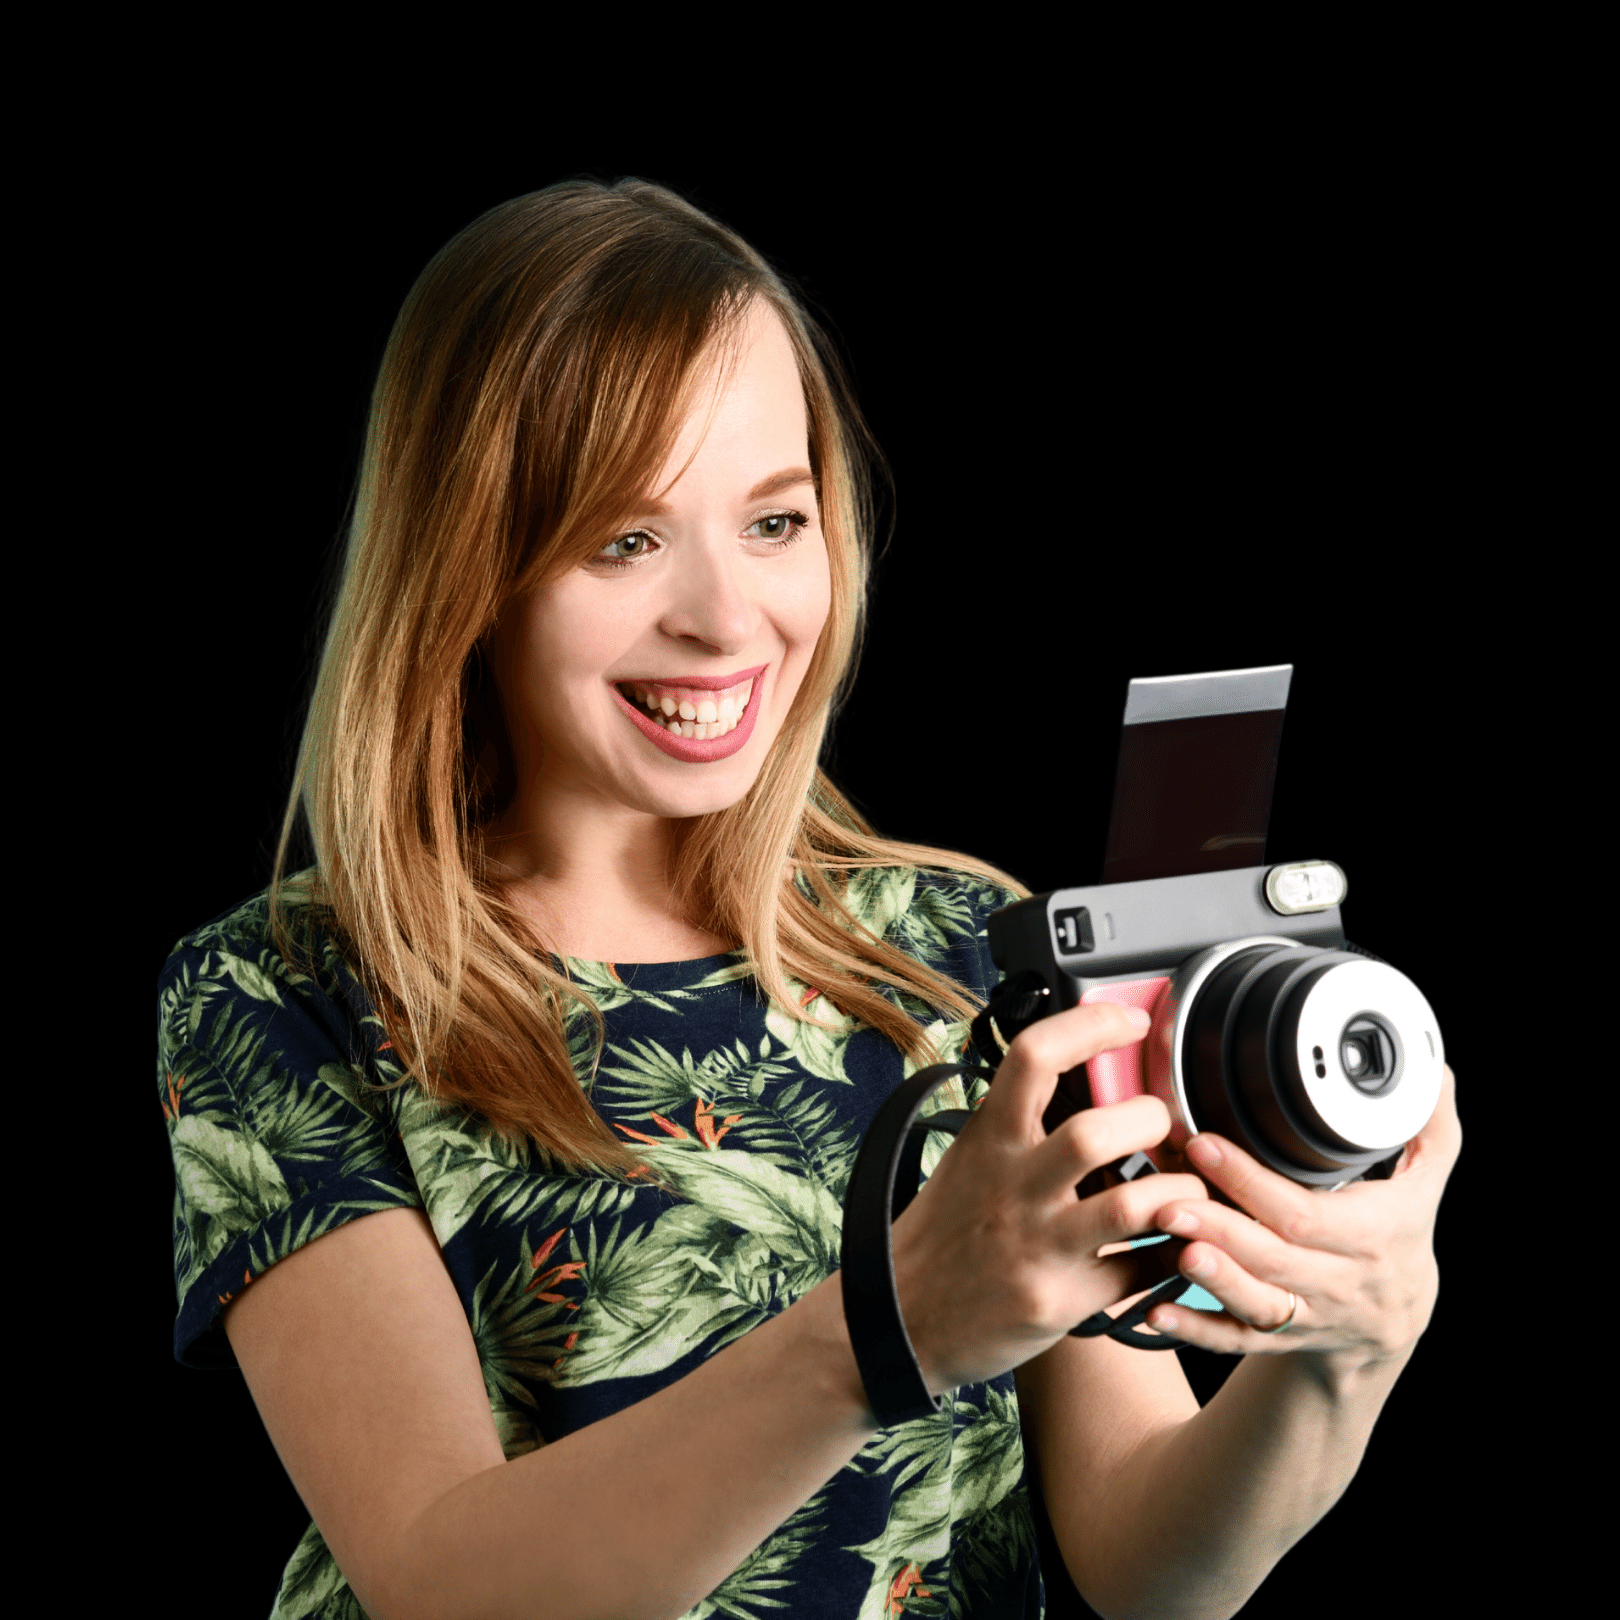 Woman discovering new perspective with camera